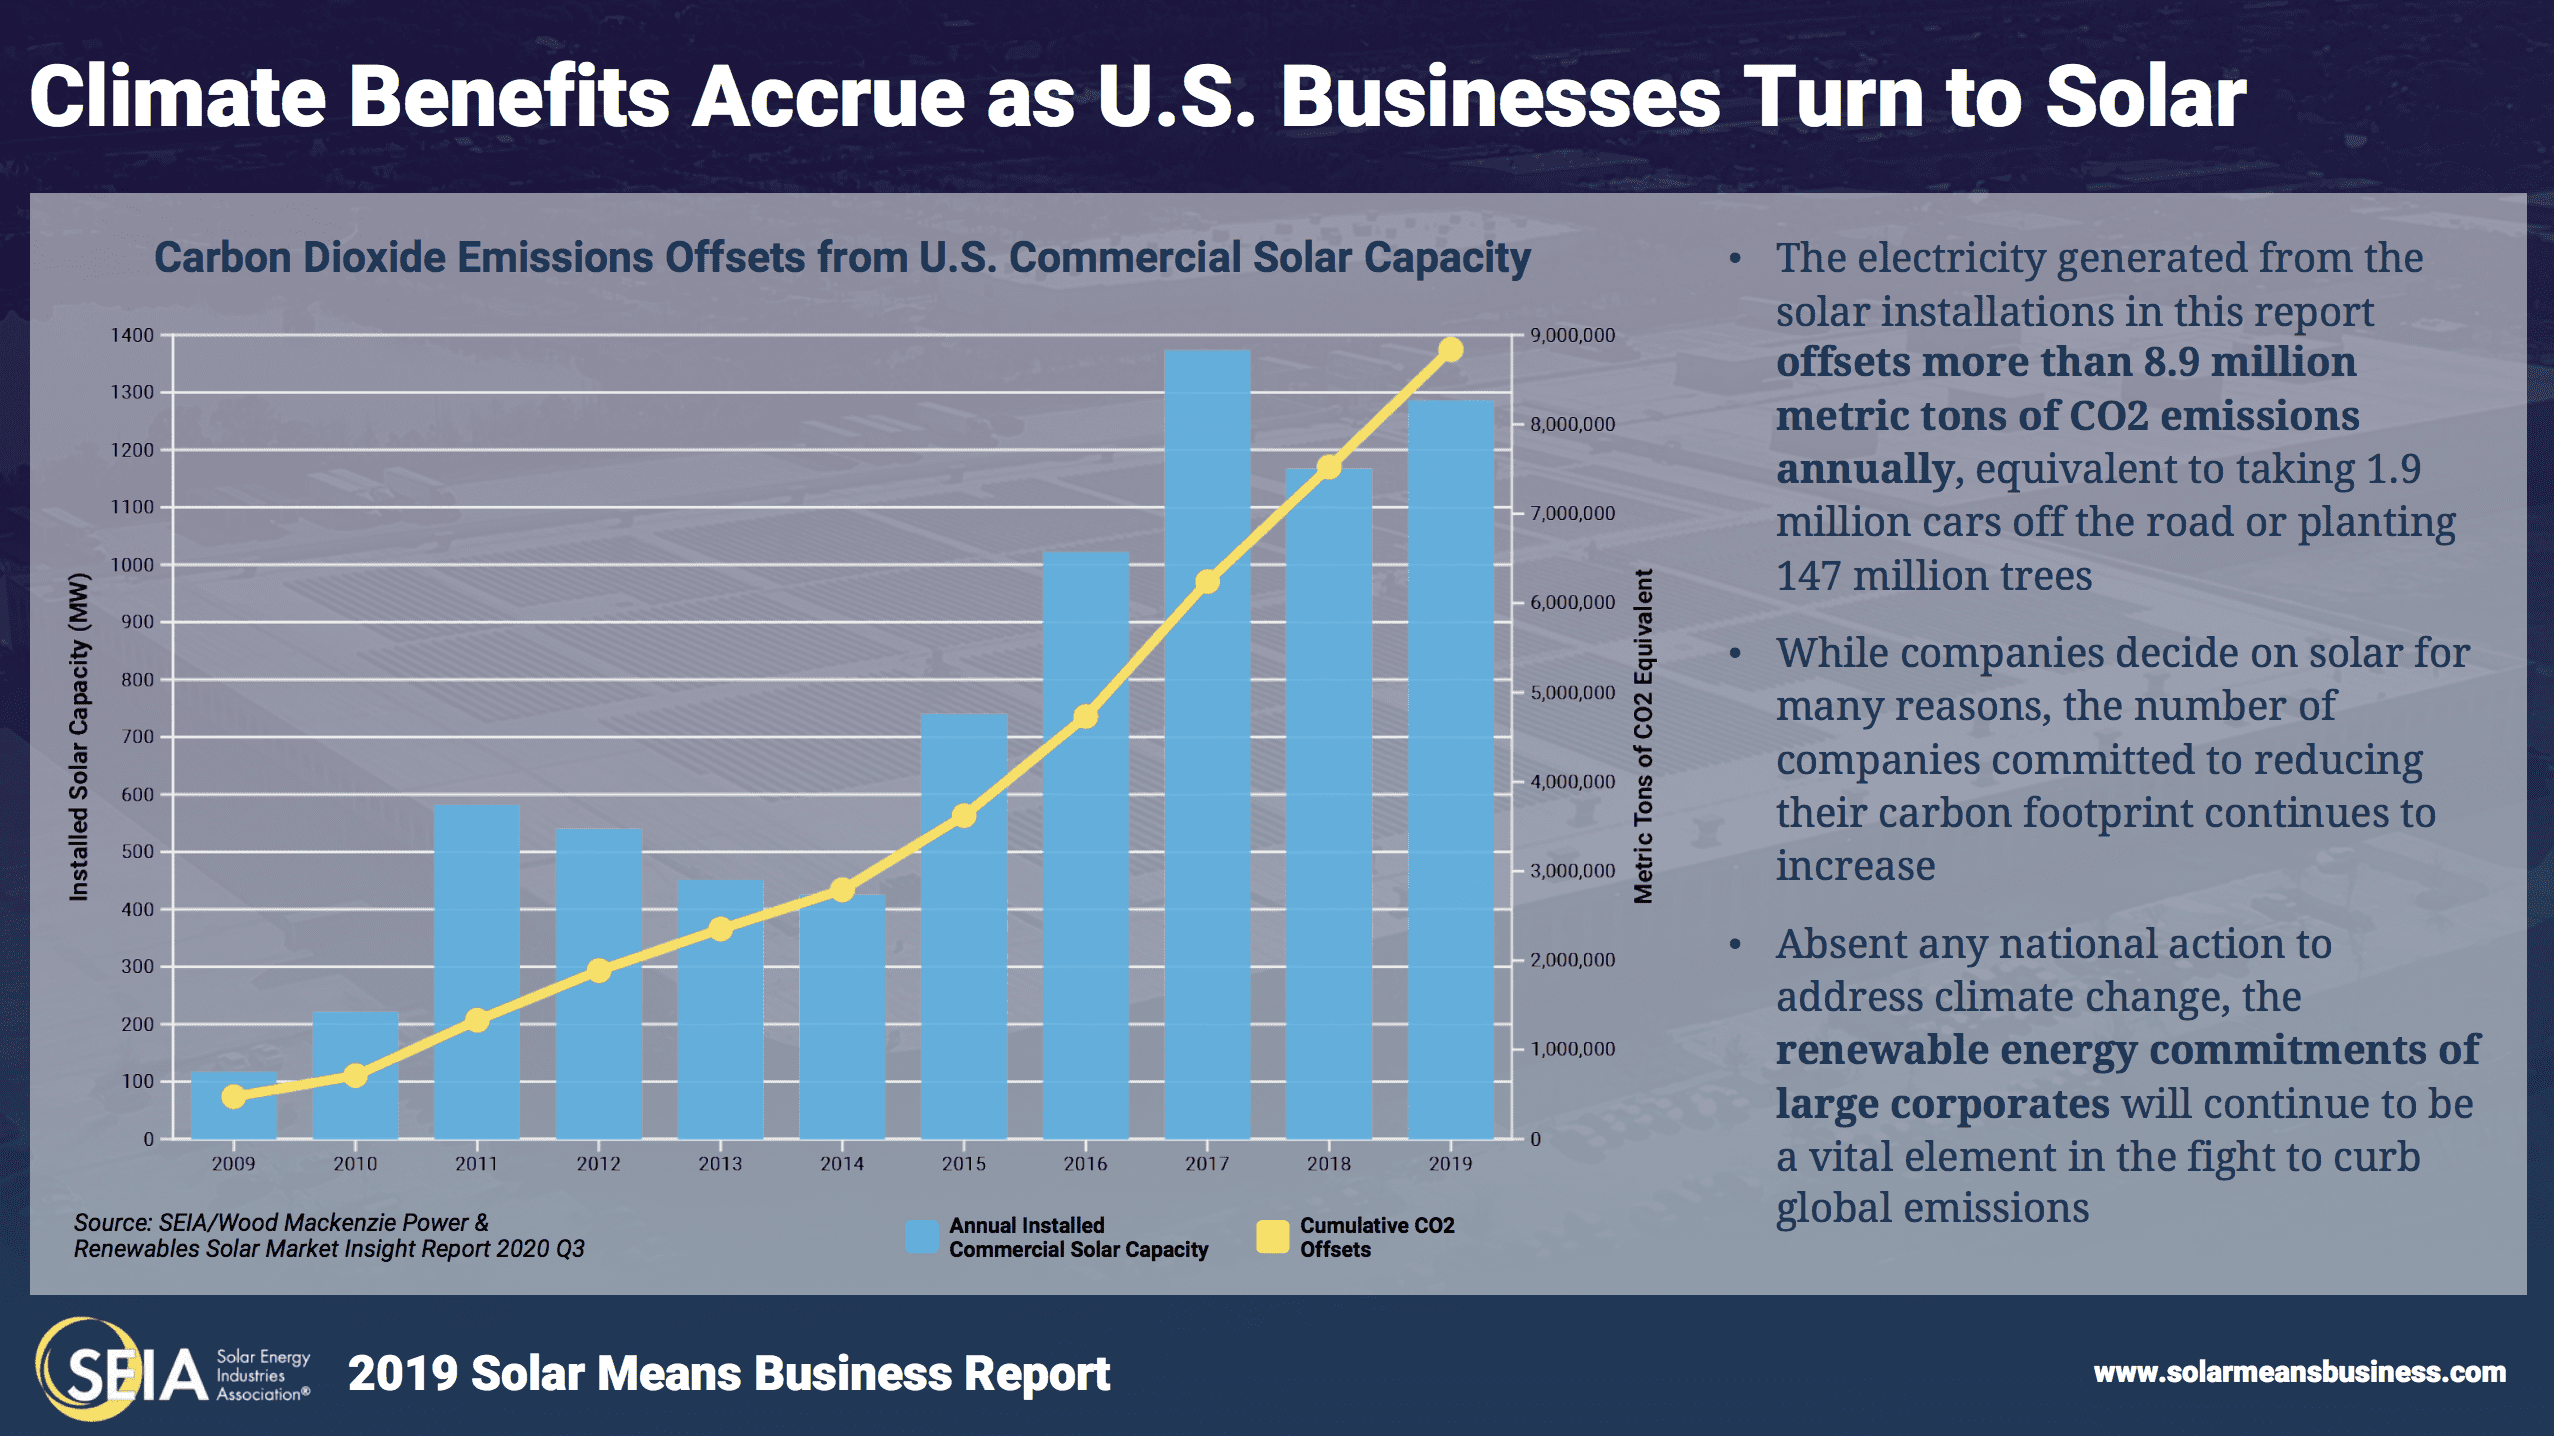 SEIA's Solar Means Business 2019 Accrued Climate Benefits Chart